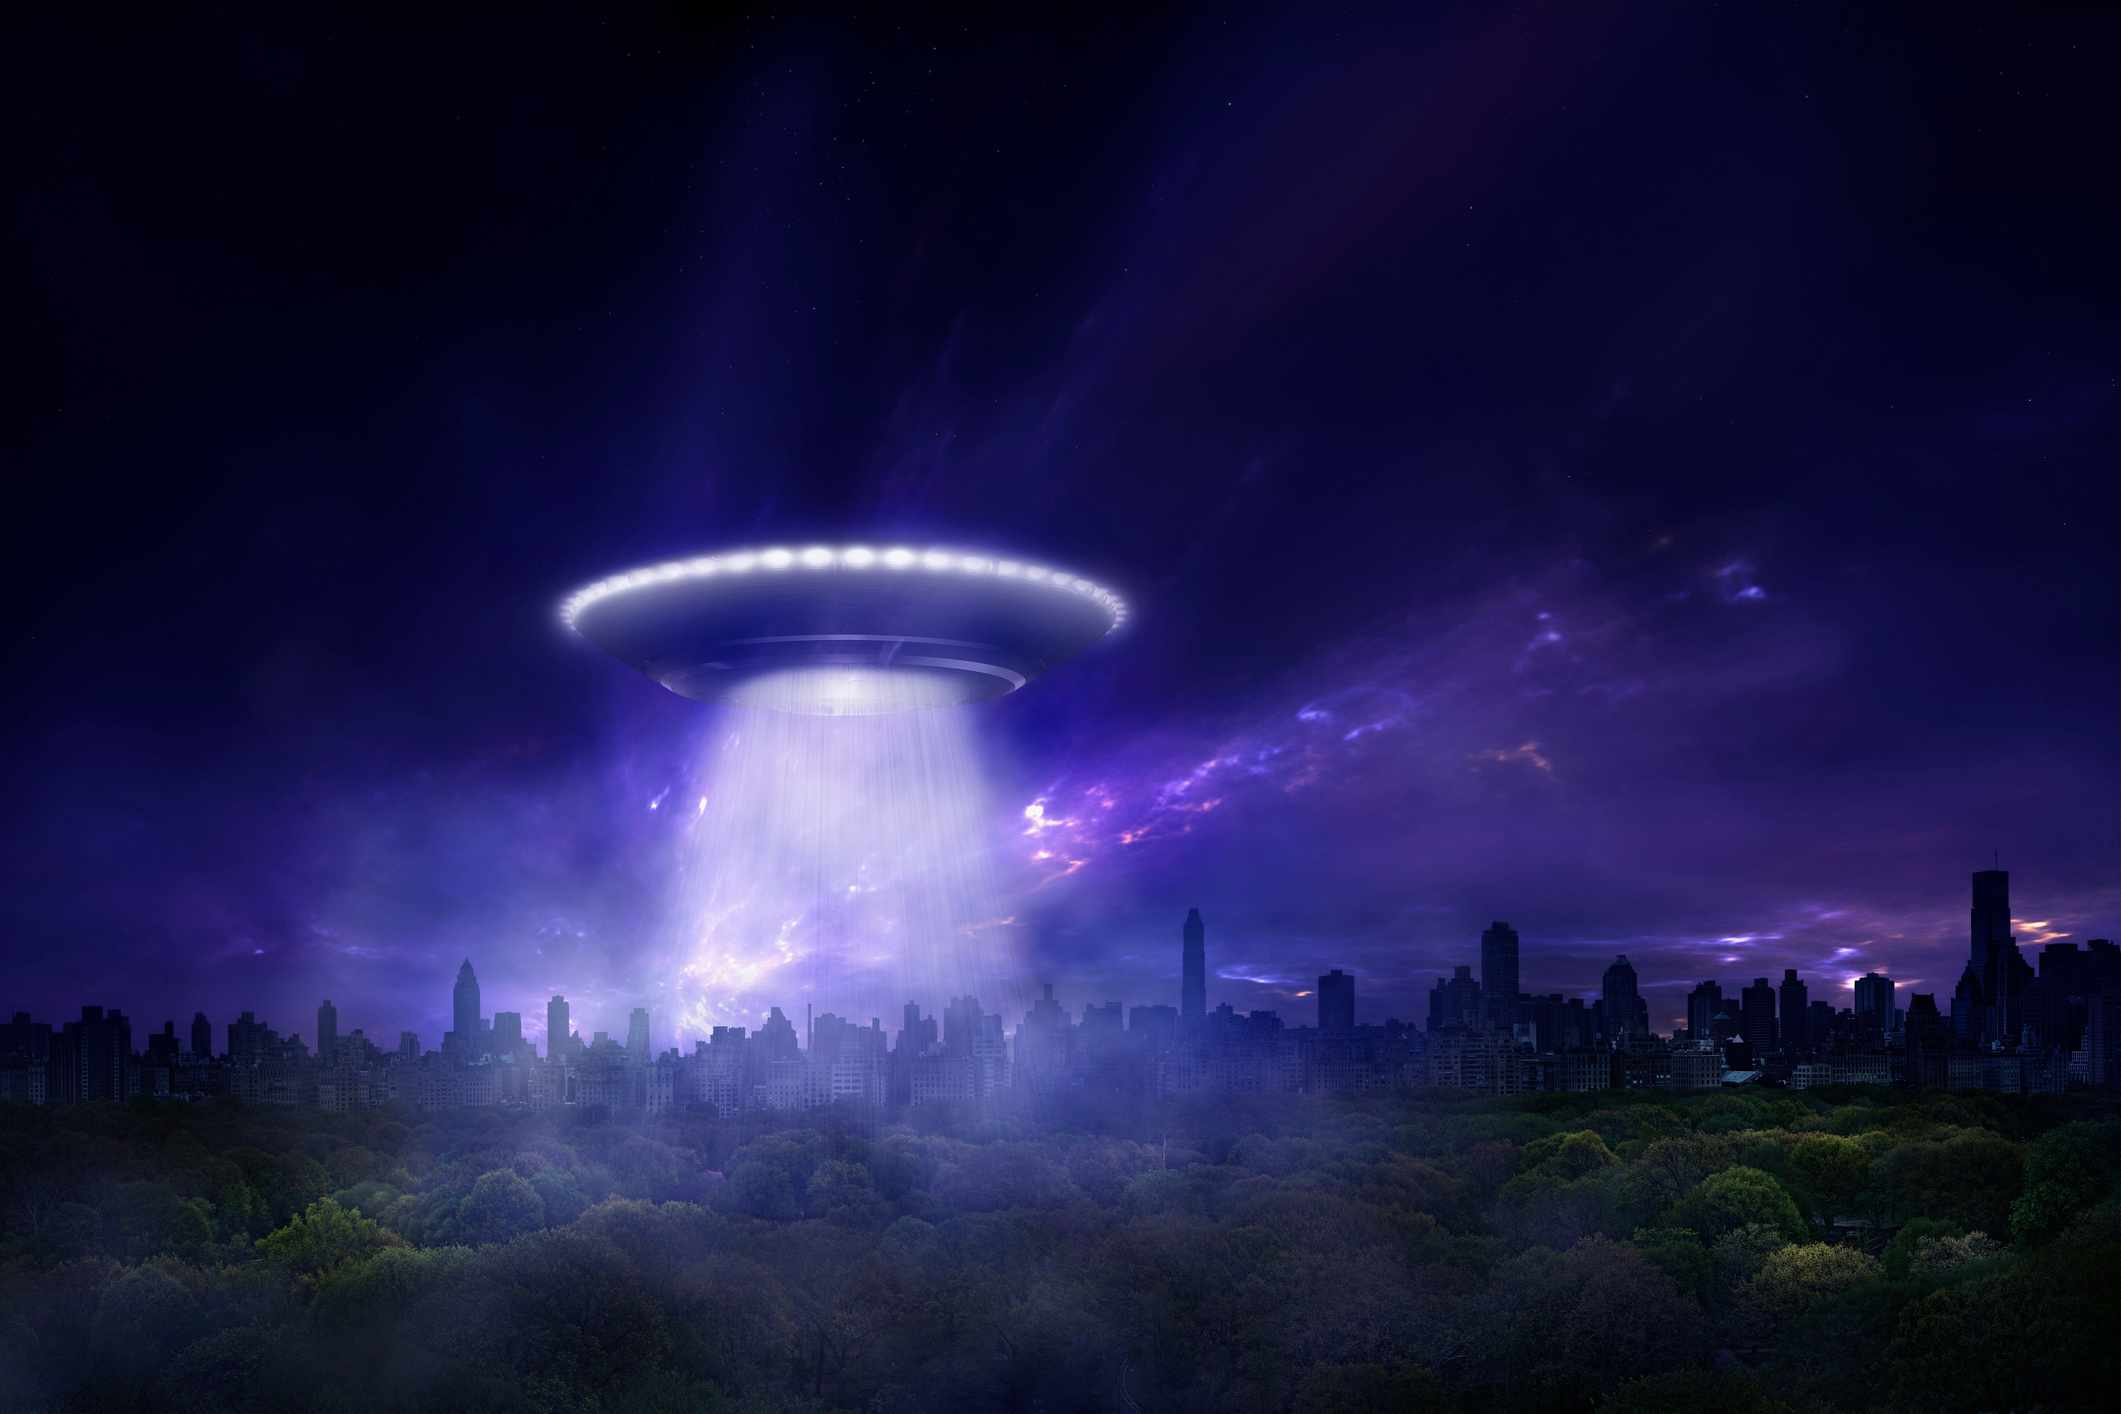 The thought experiment: What would happen if aliens contacted us? © Getty Images